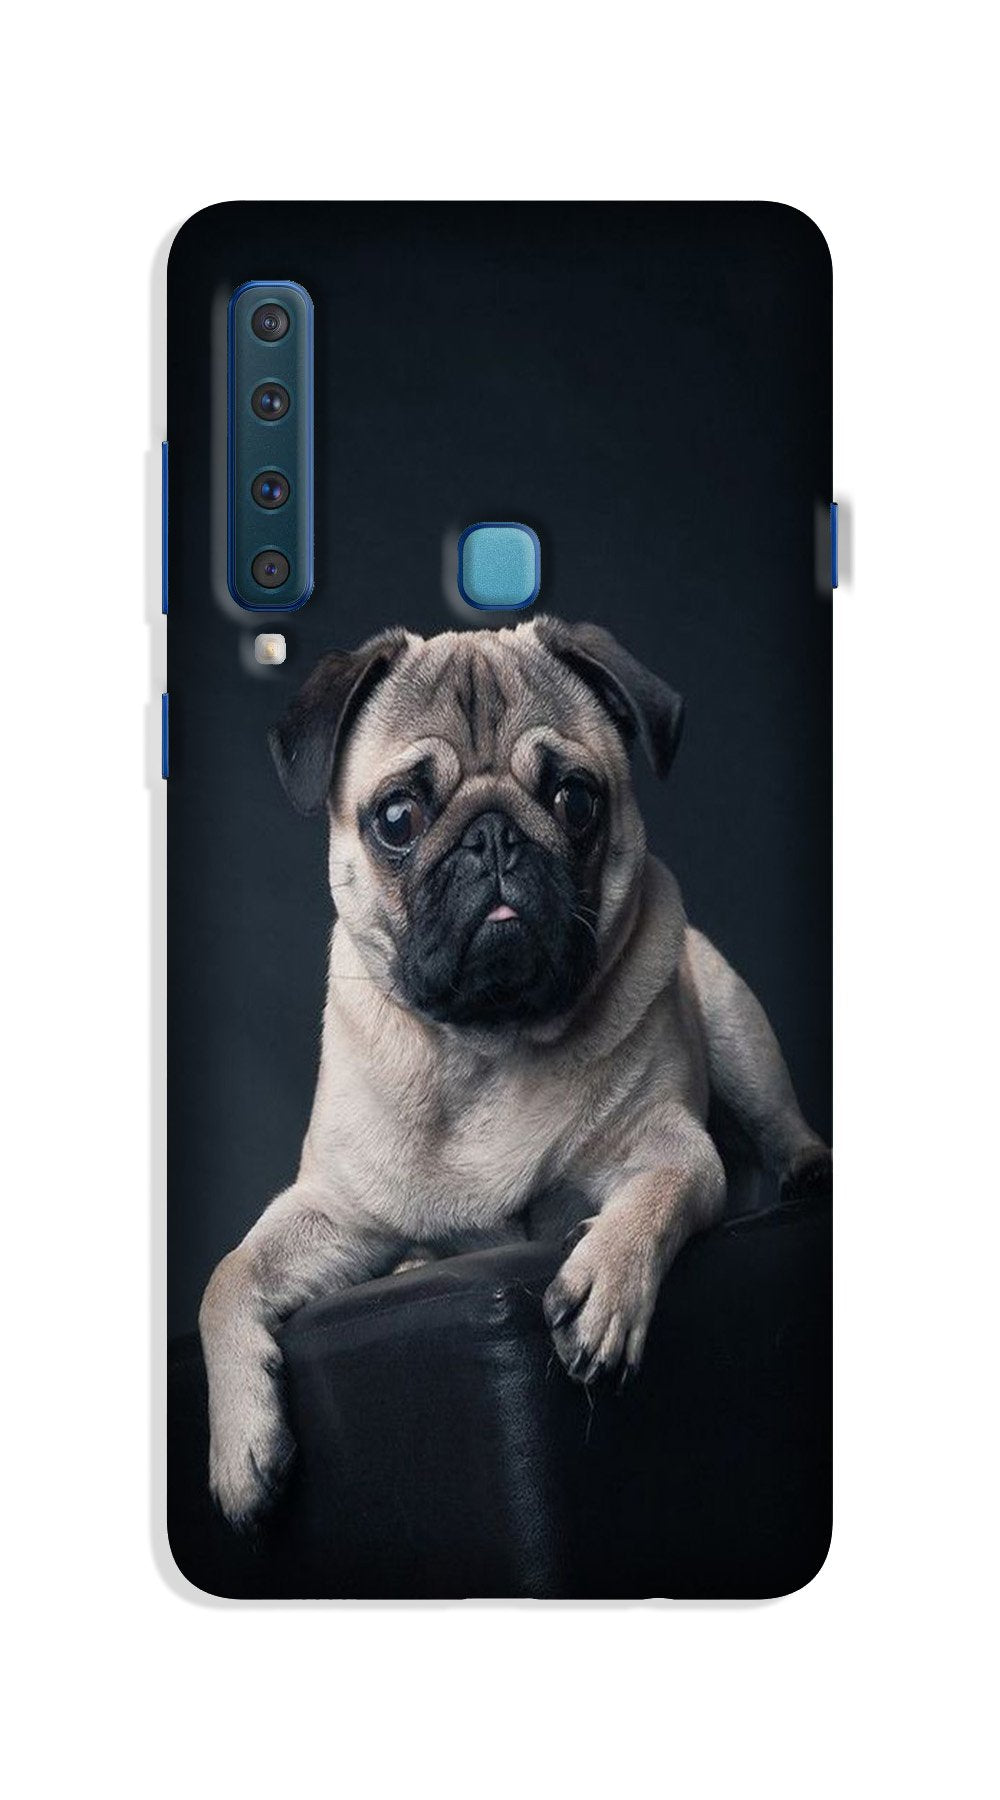 little Puppy Case for Galaxy A9 (2018)